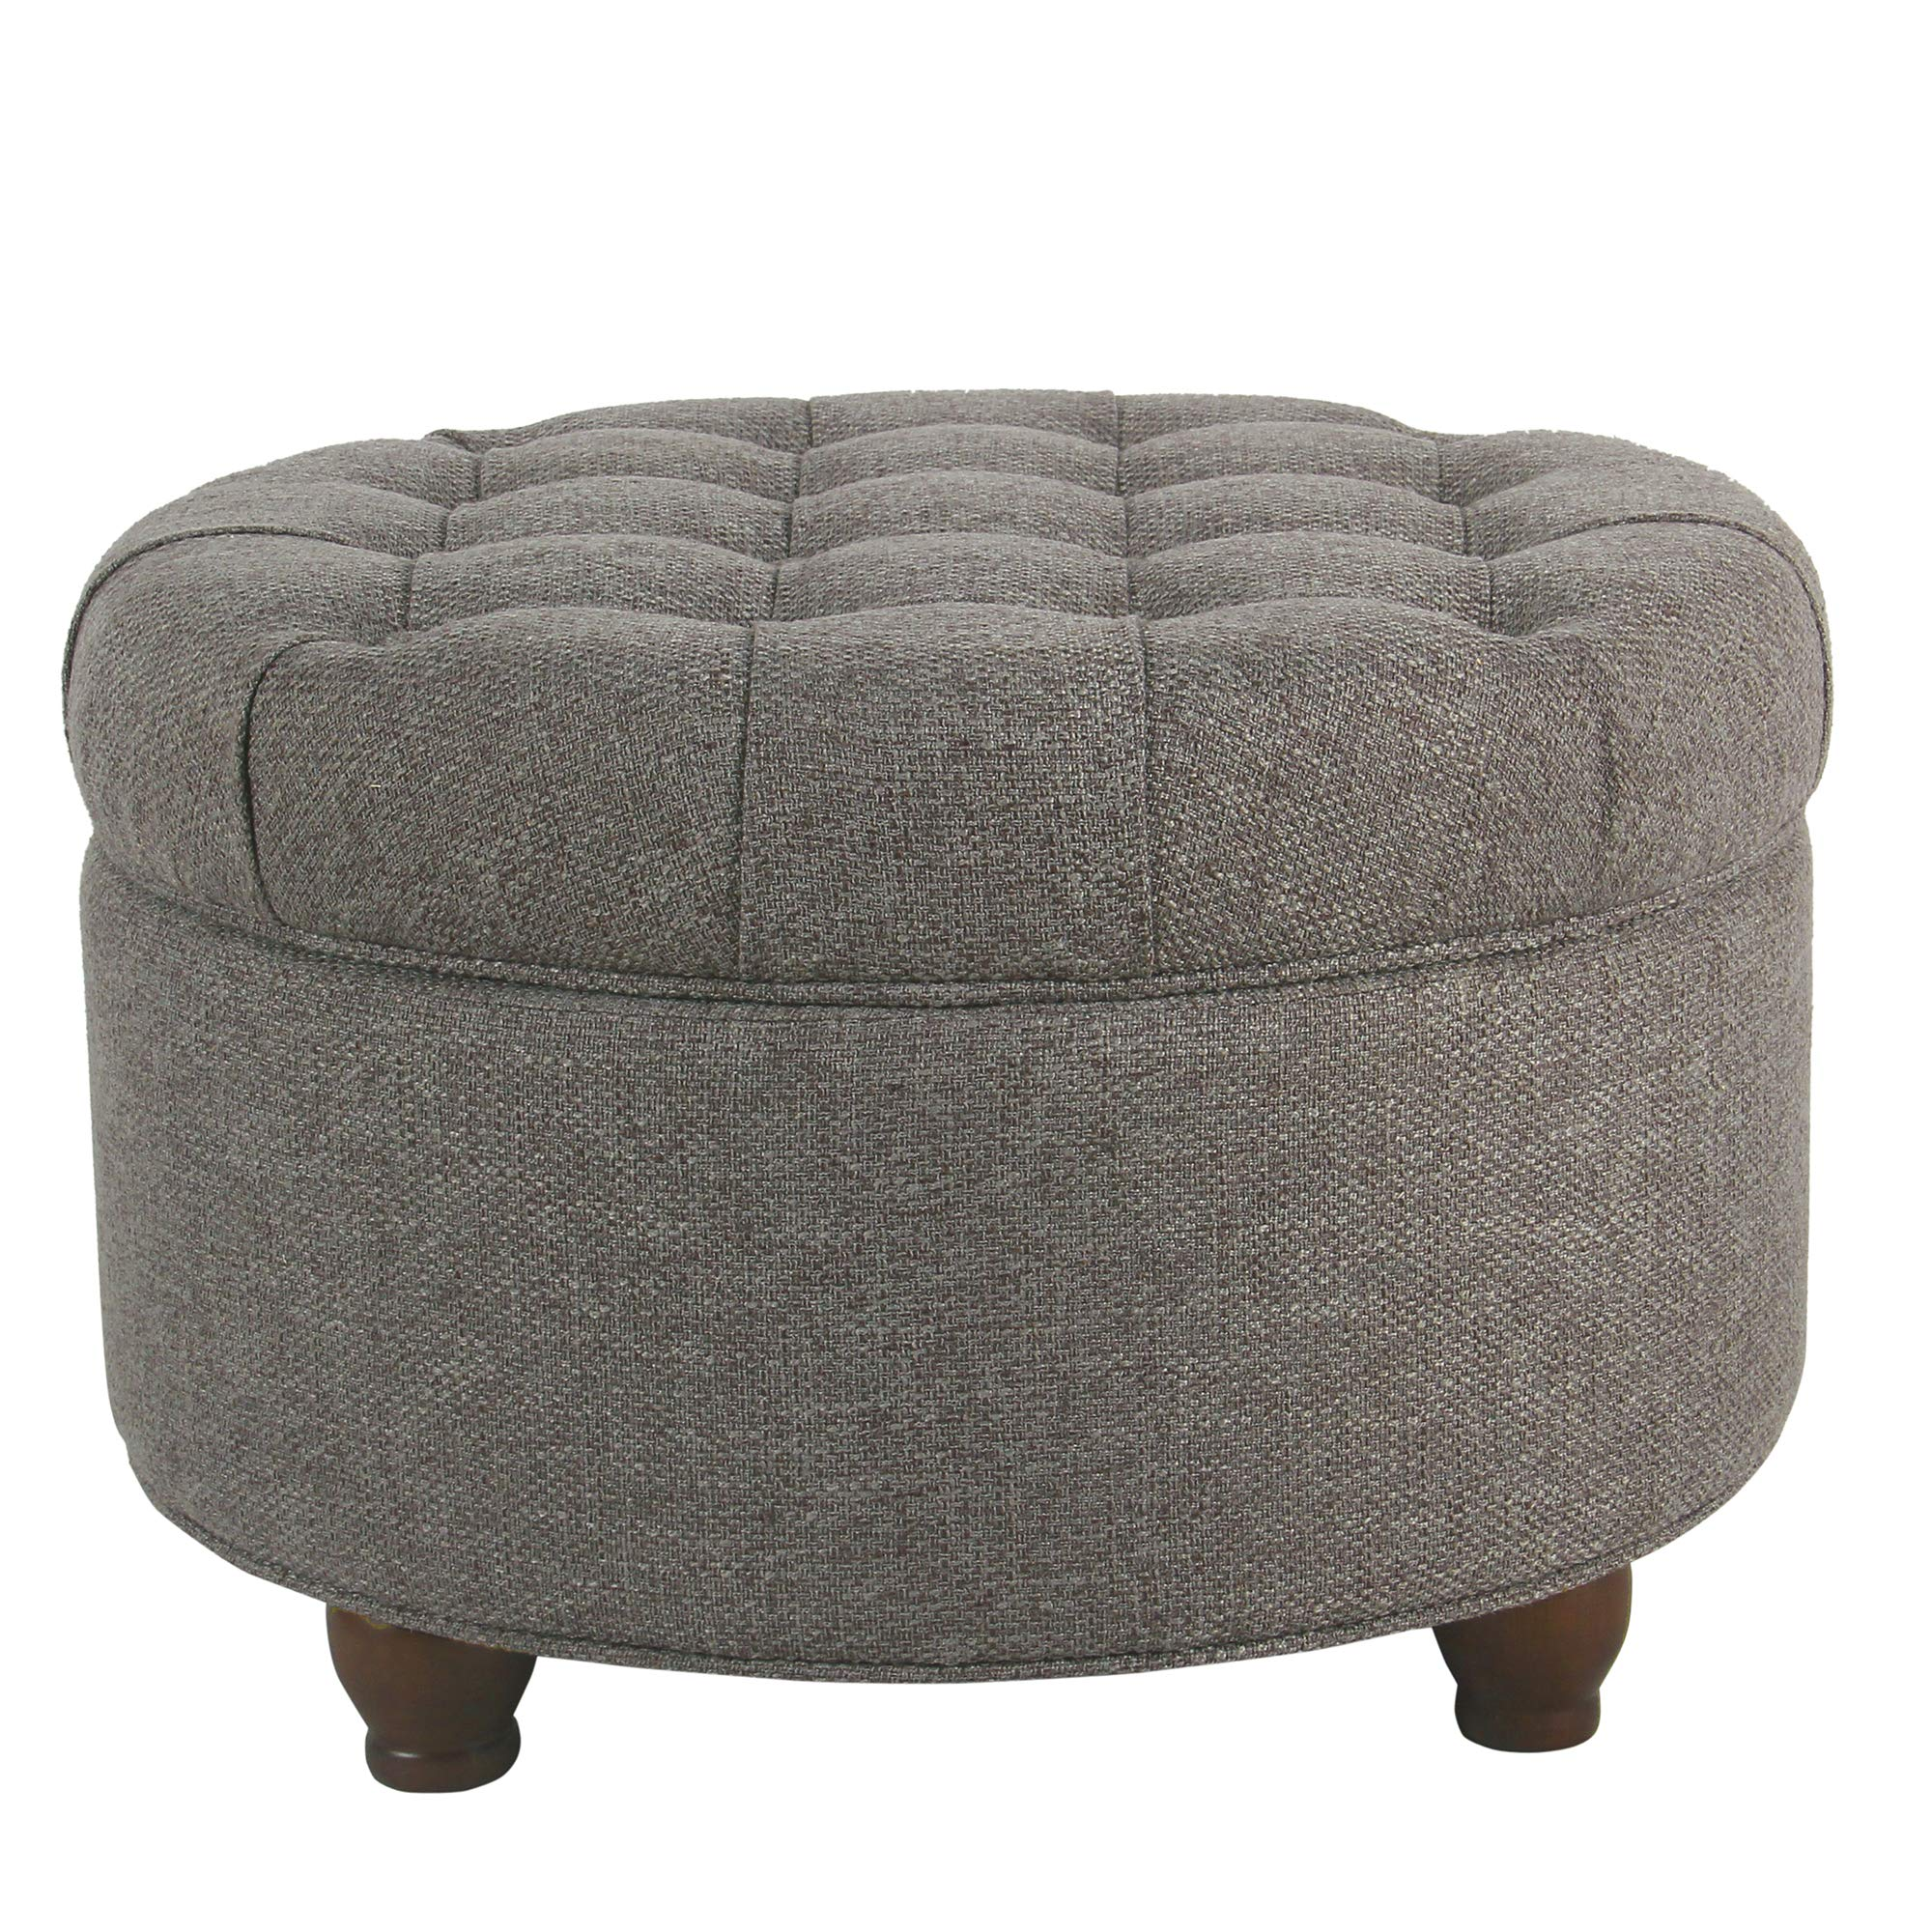 CDM product HomePop Large Button Tufted Round Storage Ottoman, Dark Gray big image